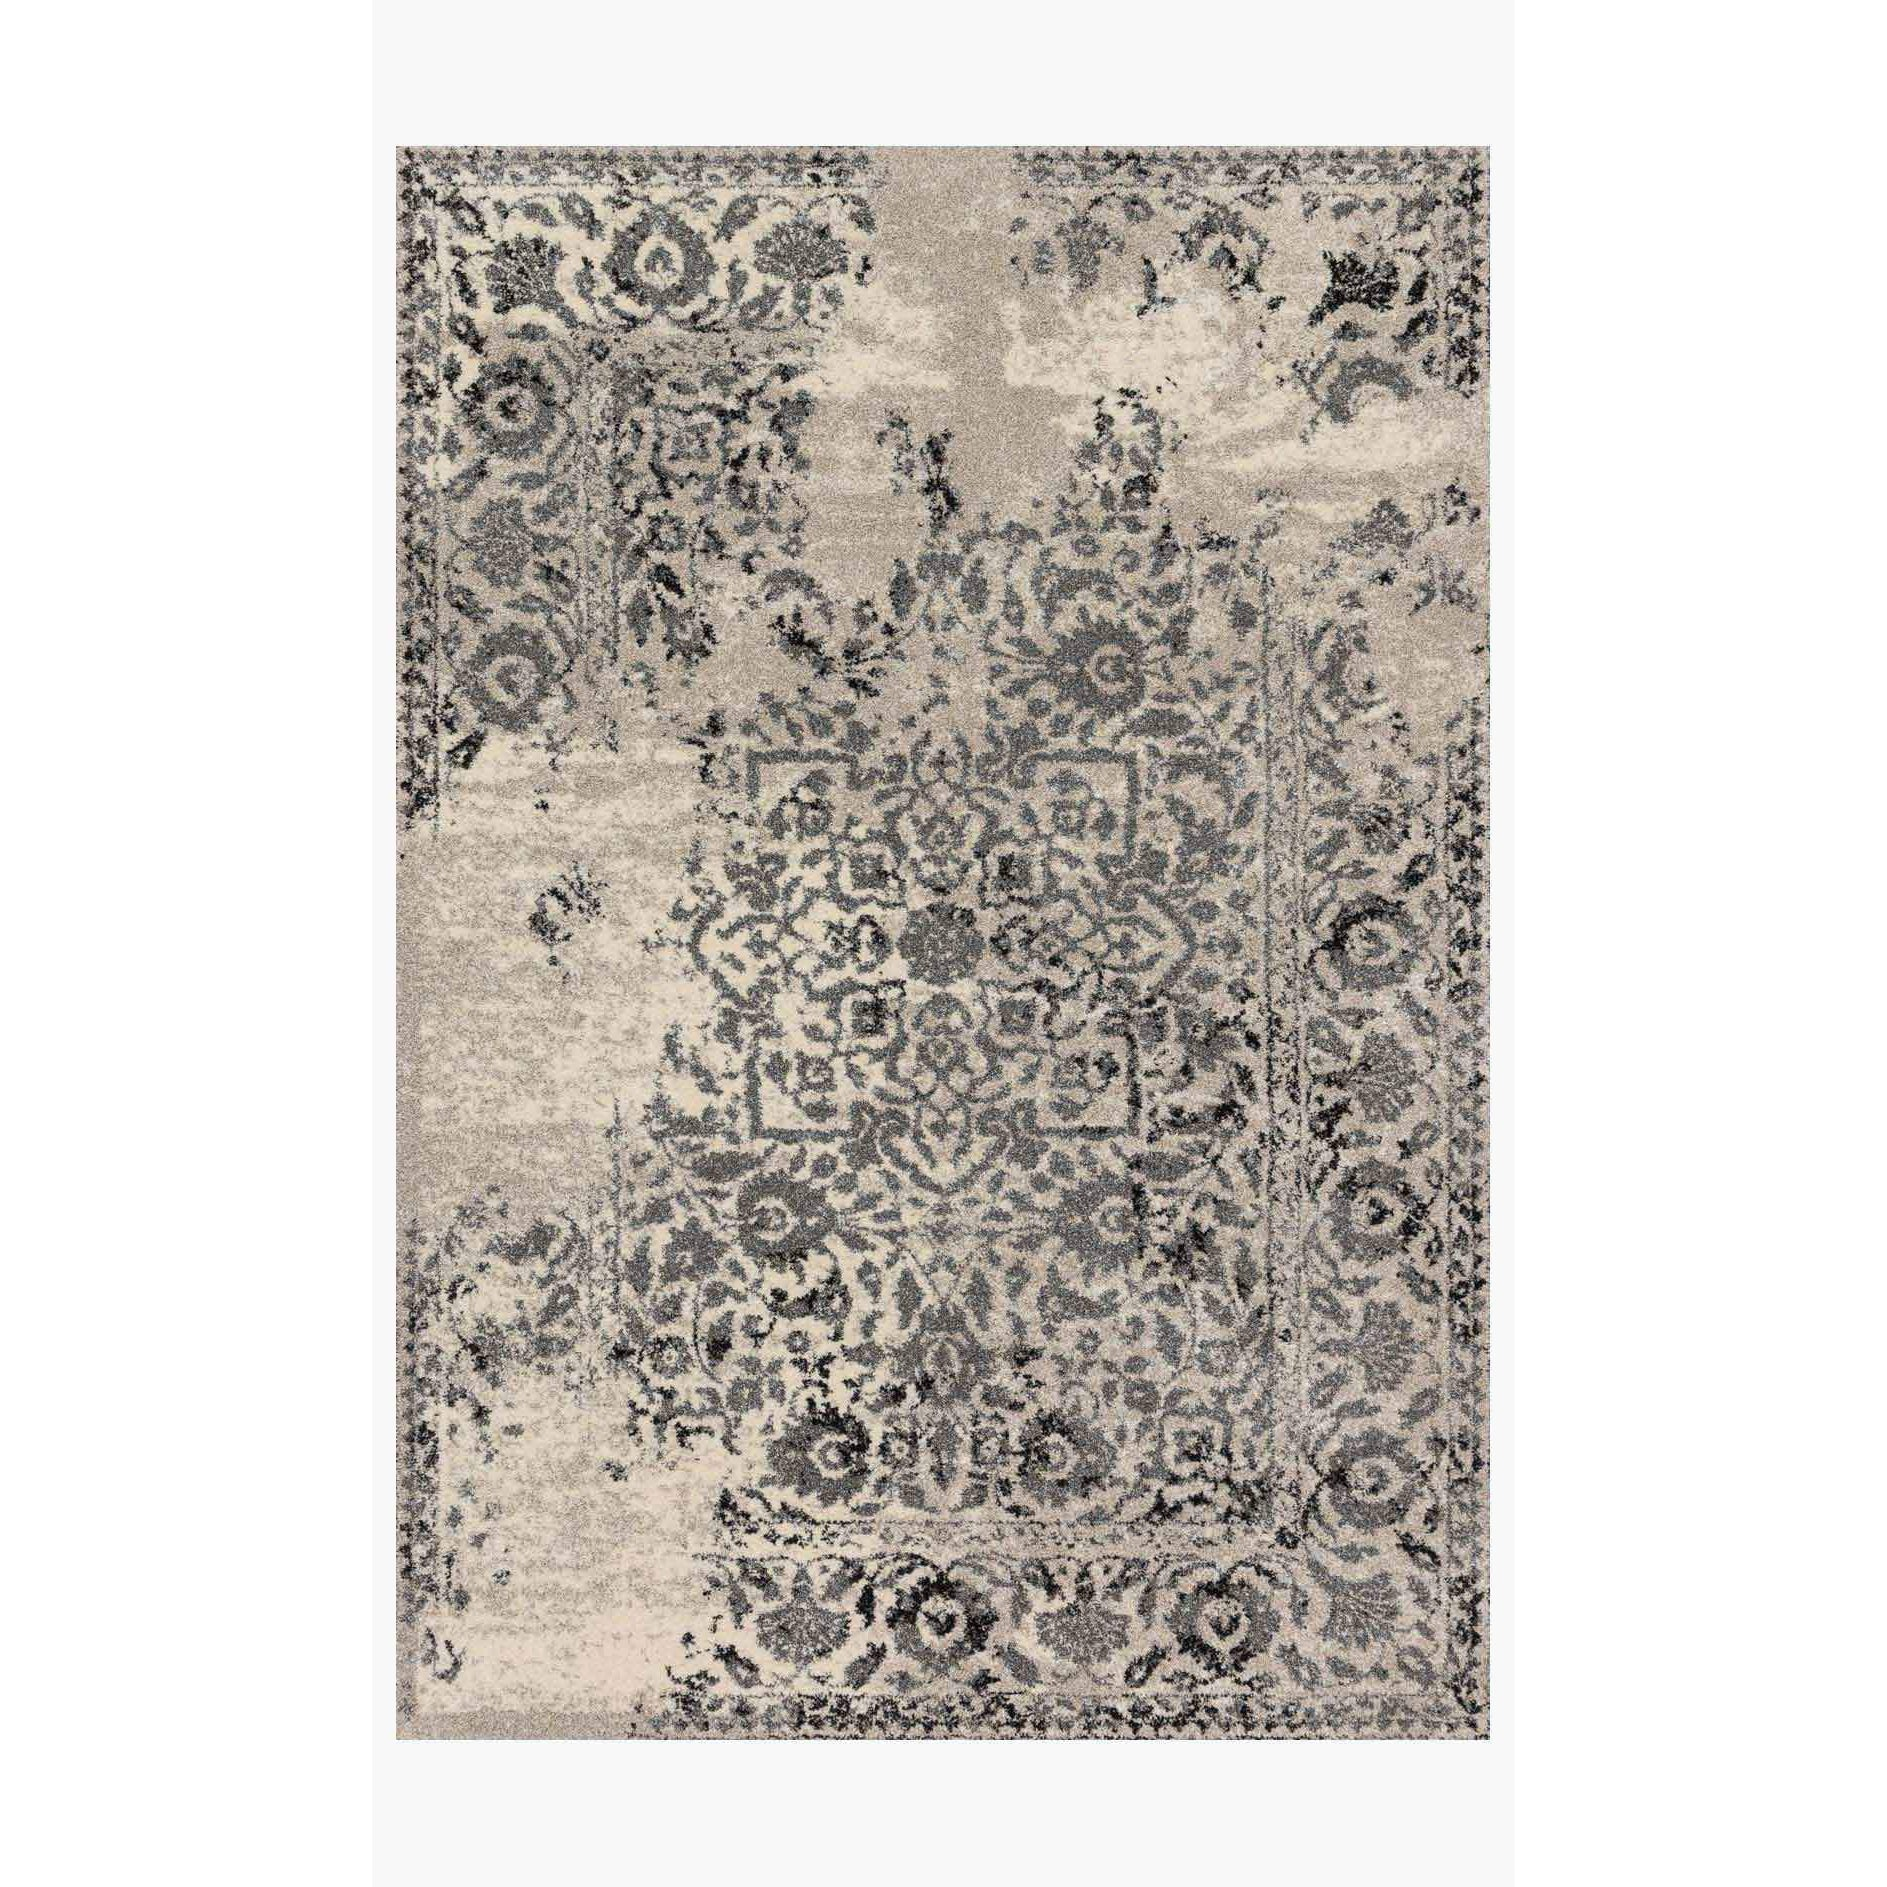 Emory Rug by Loloi Rugs - EB-01 - Ivory / Charcoal